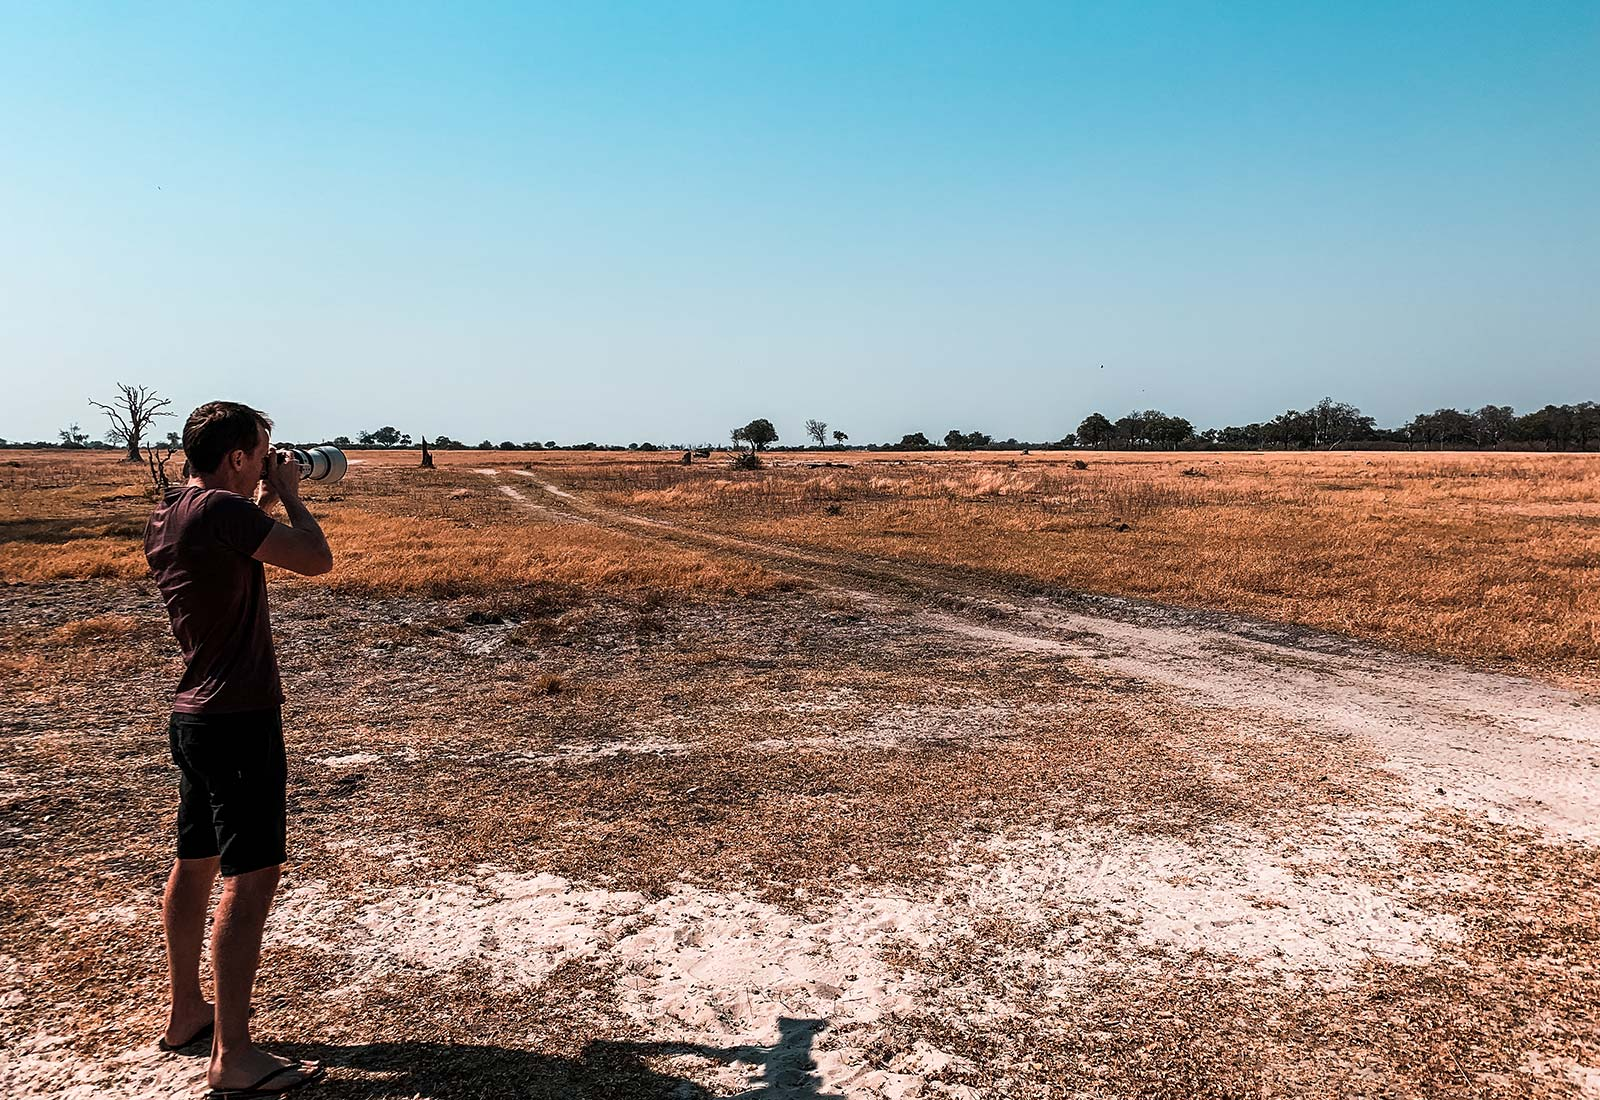 David Simpson taking photos of the plains in Botswana, Africa. An owl and African sunsets